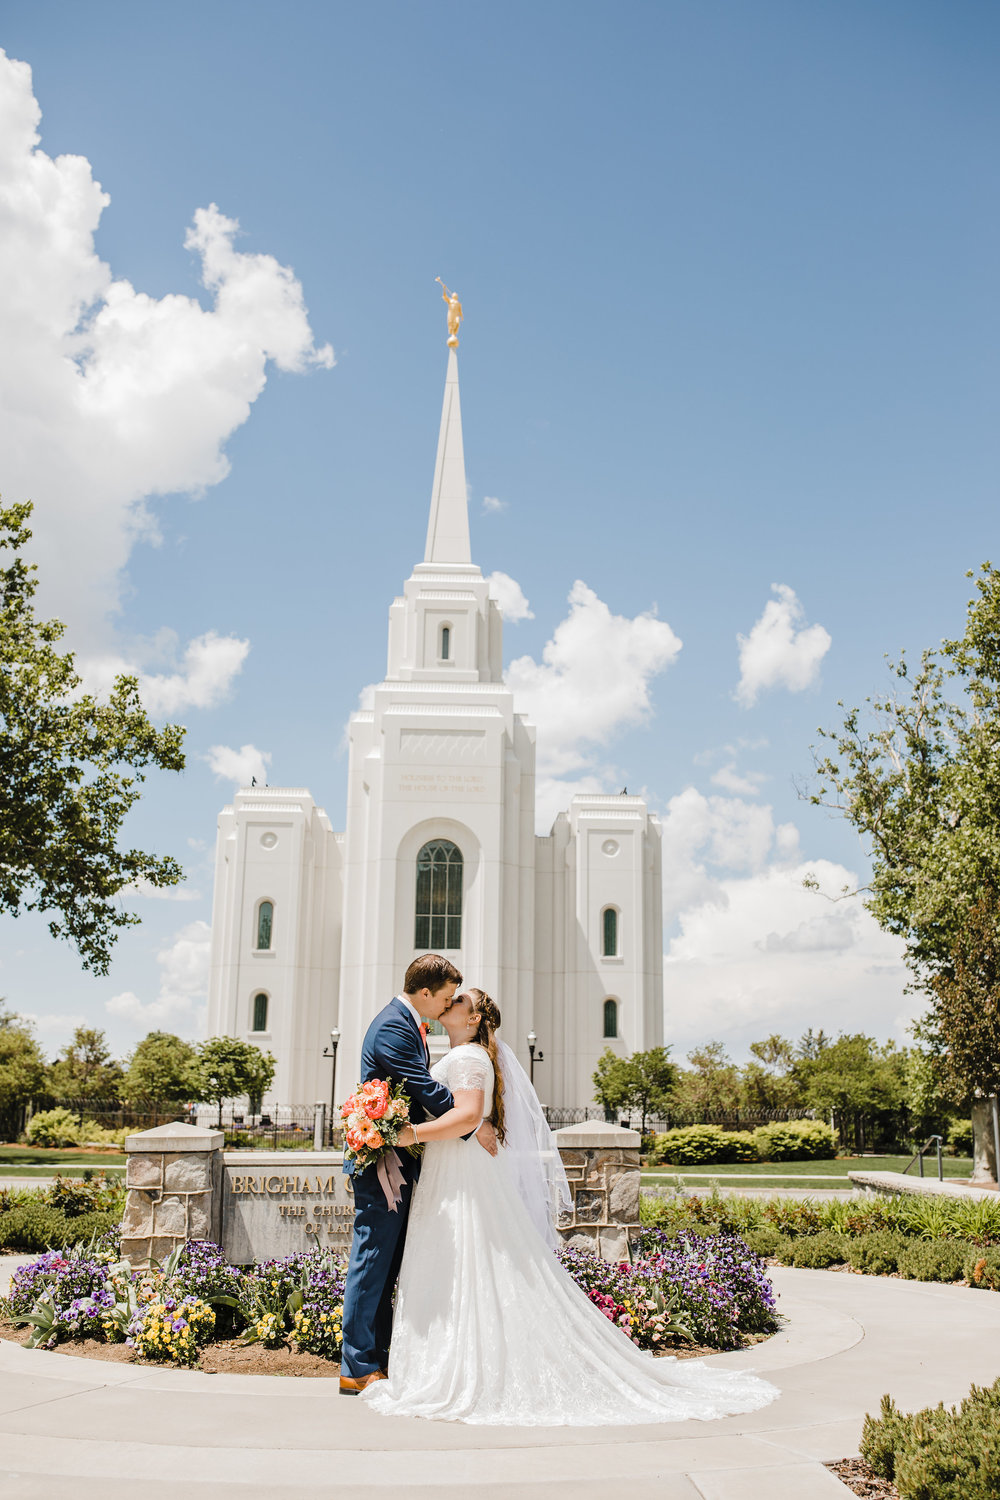 Professional Wedding Photographer in Brigham City Utah LDS Temple Wedding modest wedding dress kissing summer wedding